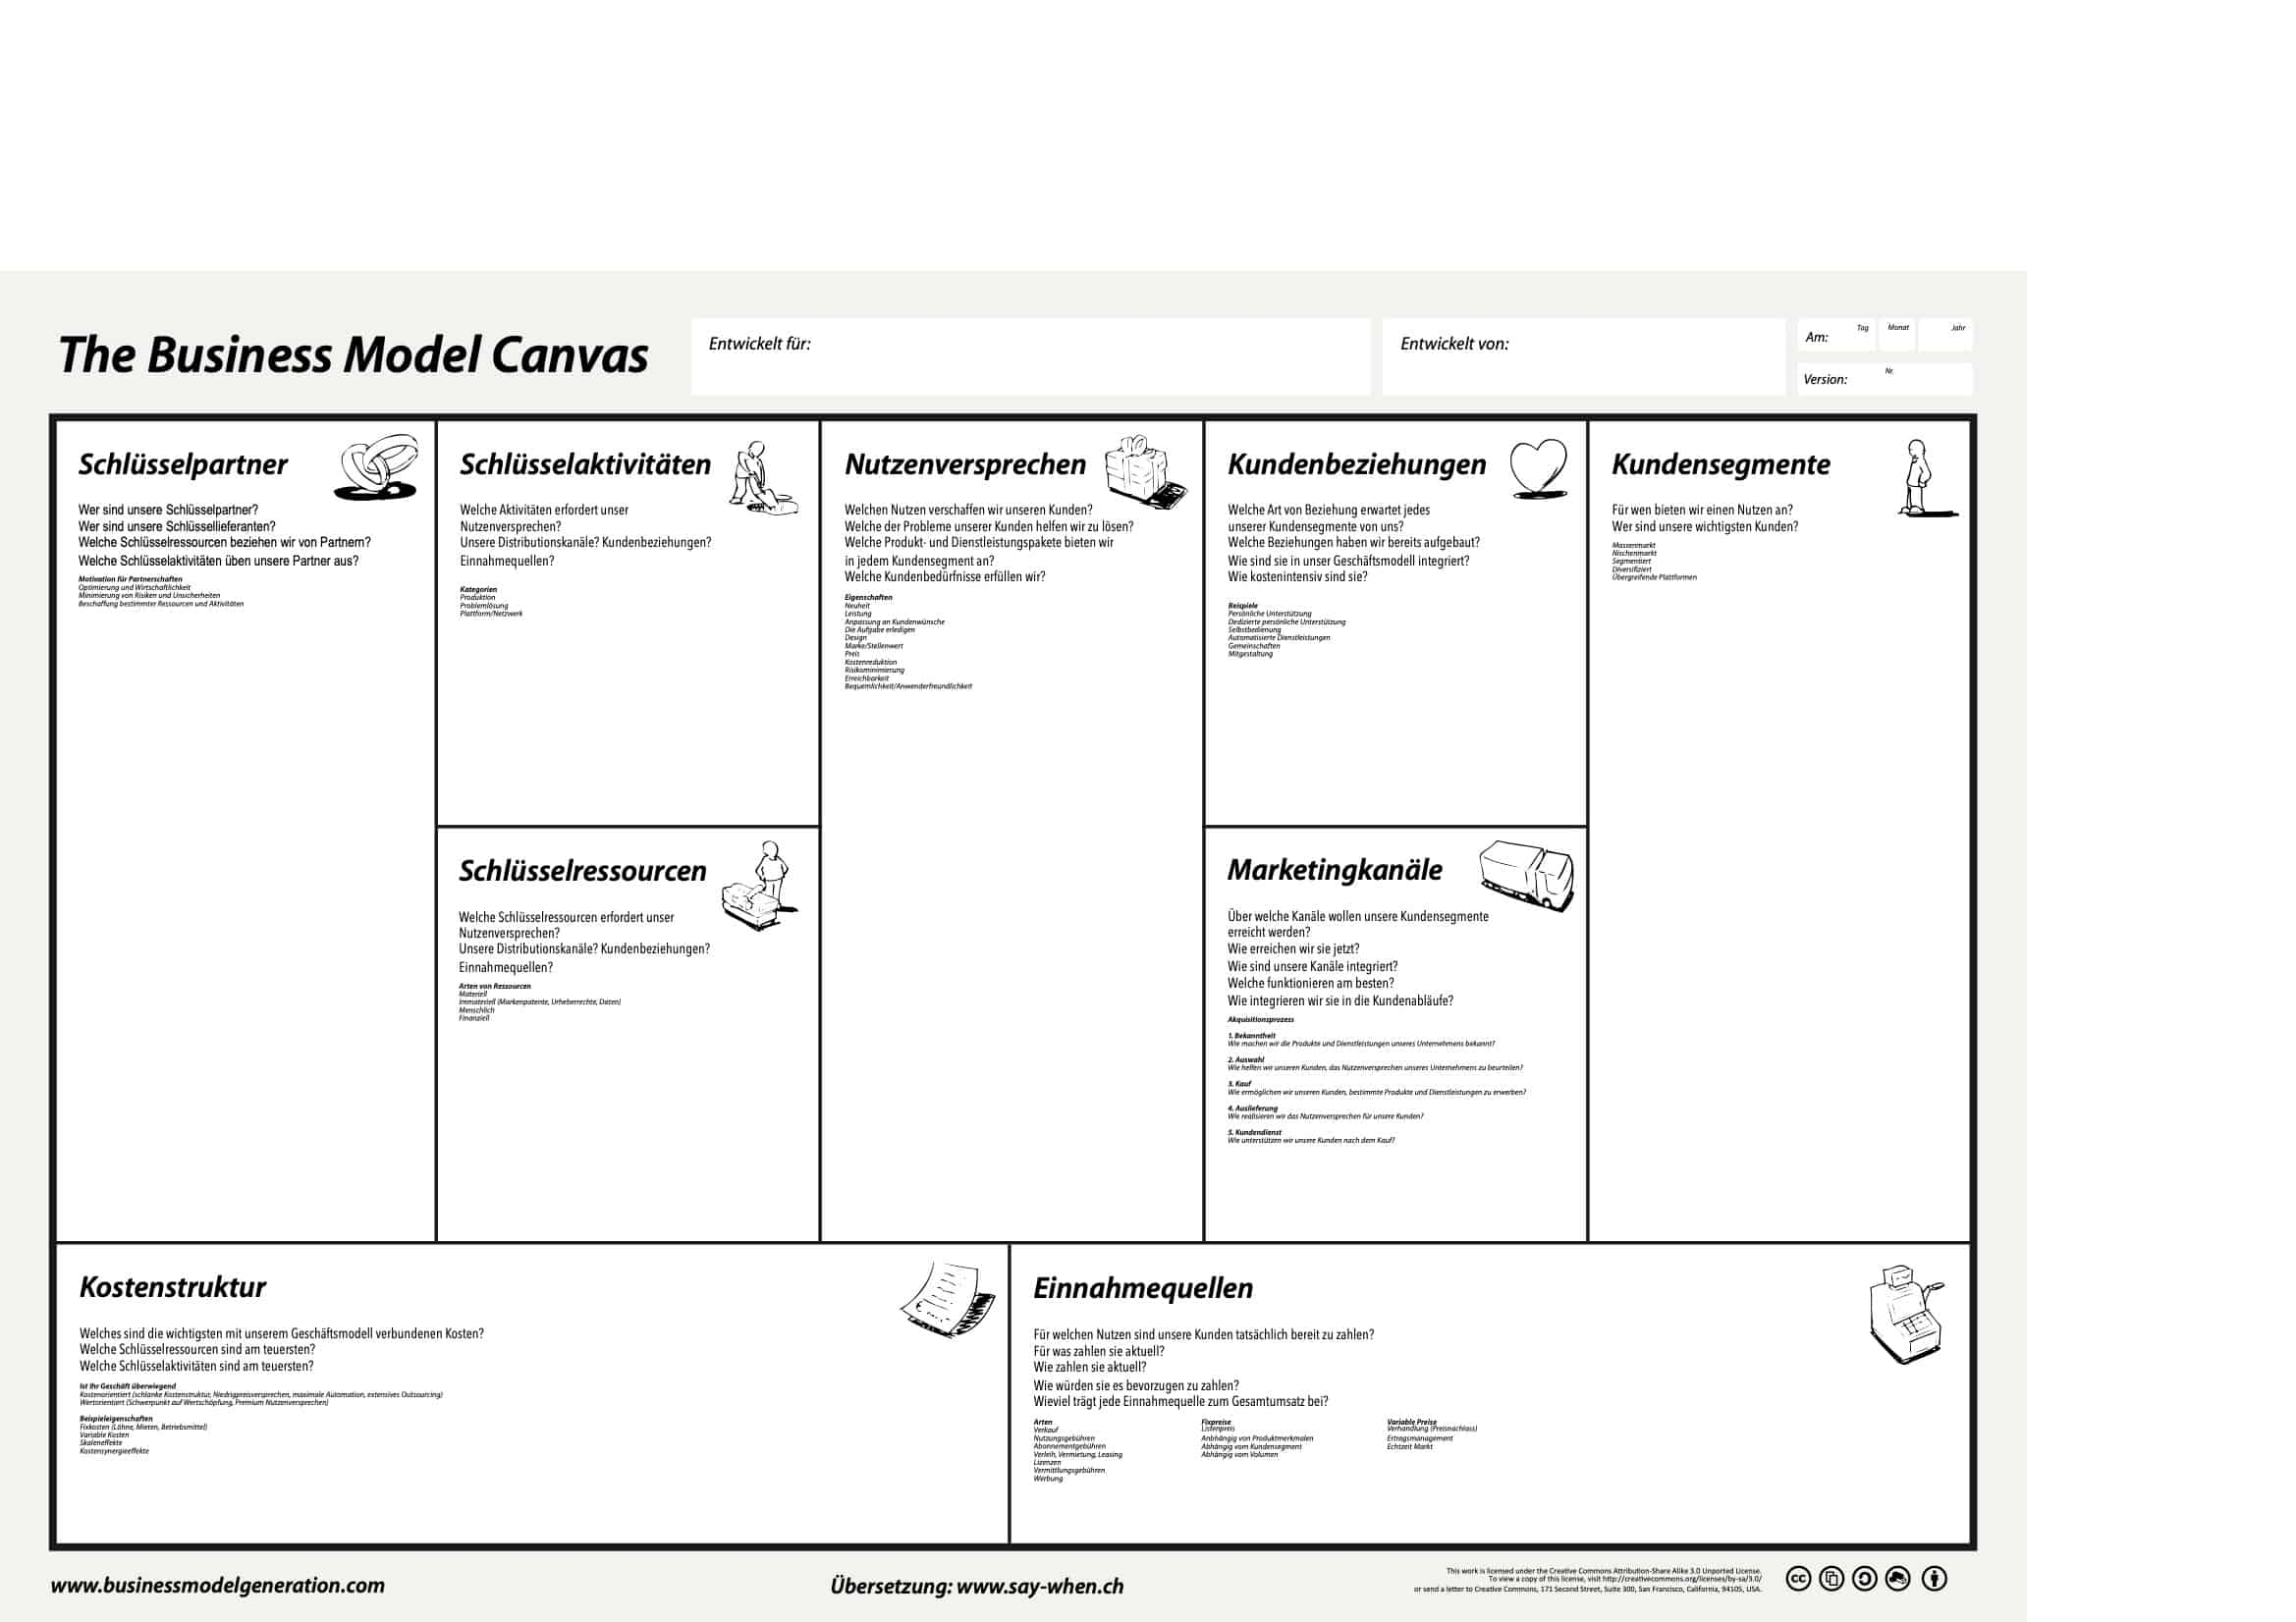 Business Model Canvas mit Erläuterungen als PDF Datei in Deutsch